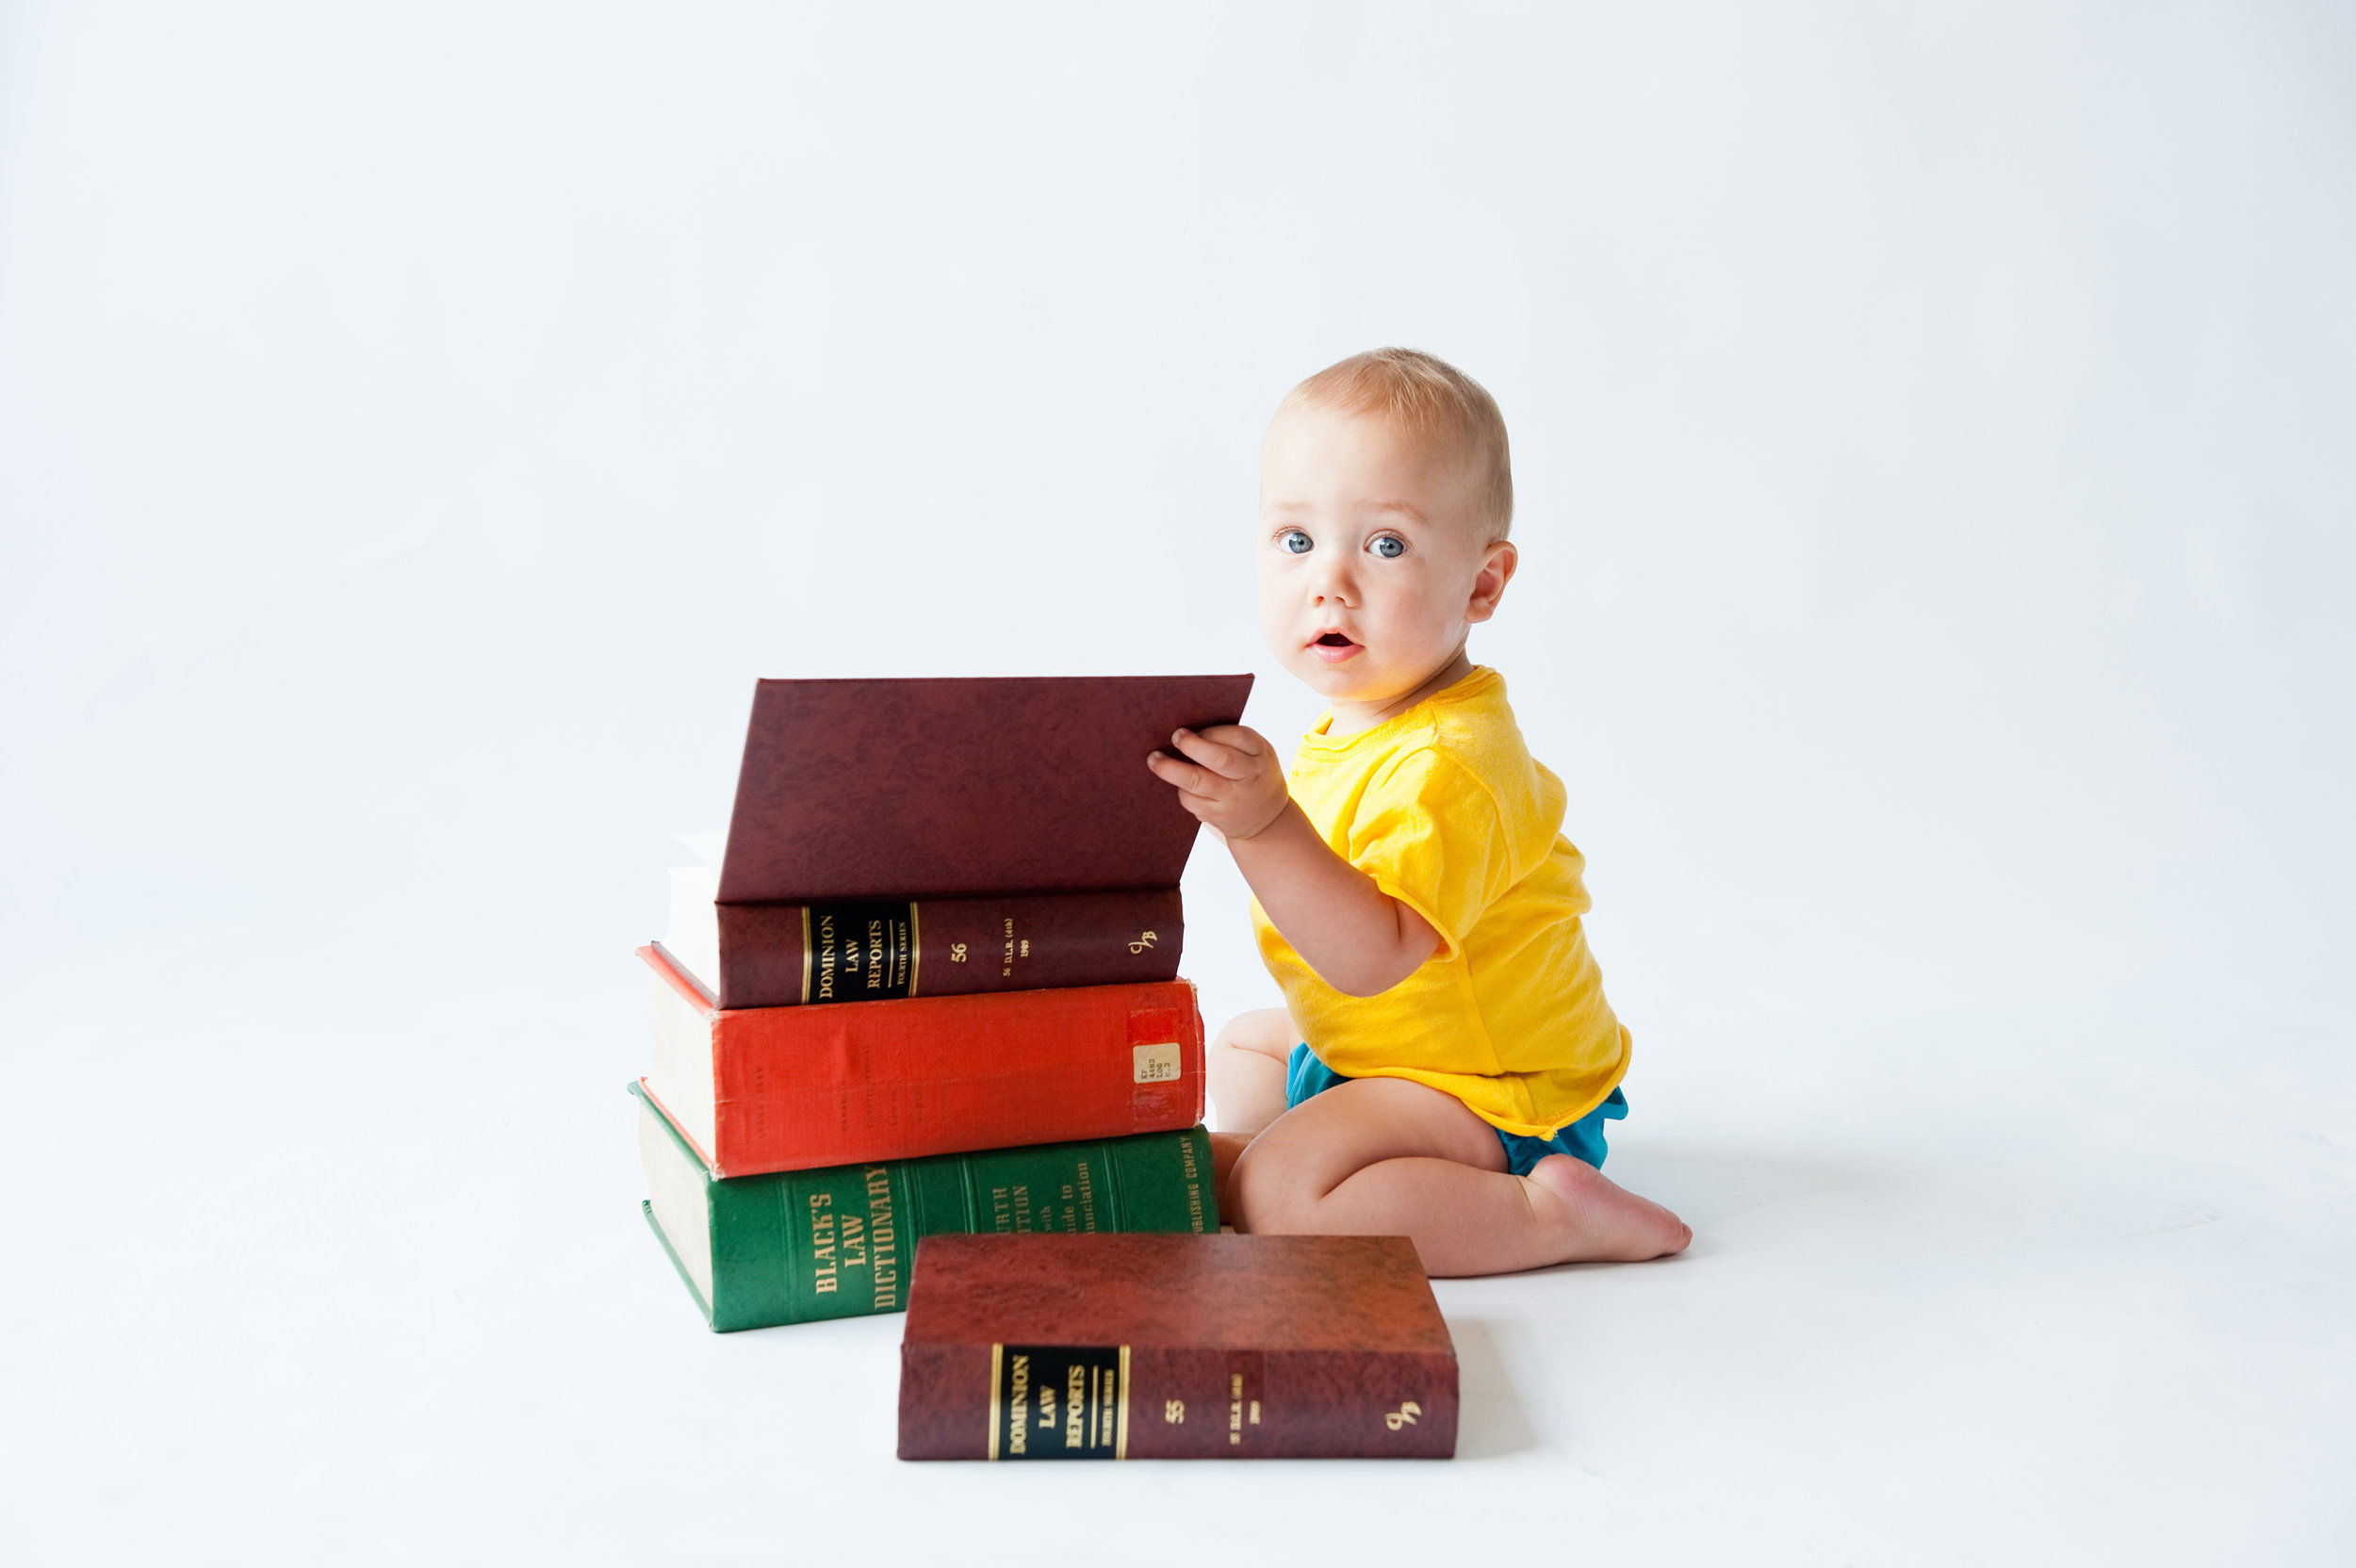 LawBabies boy open book -41.jpg